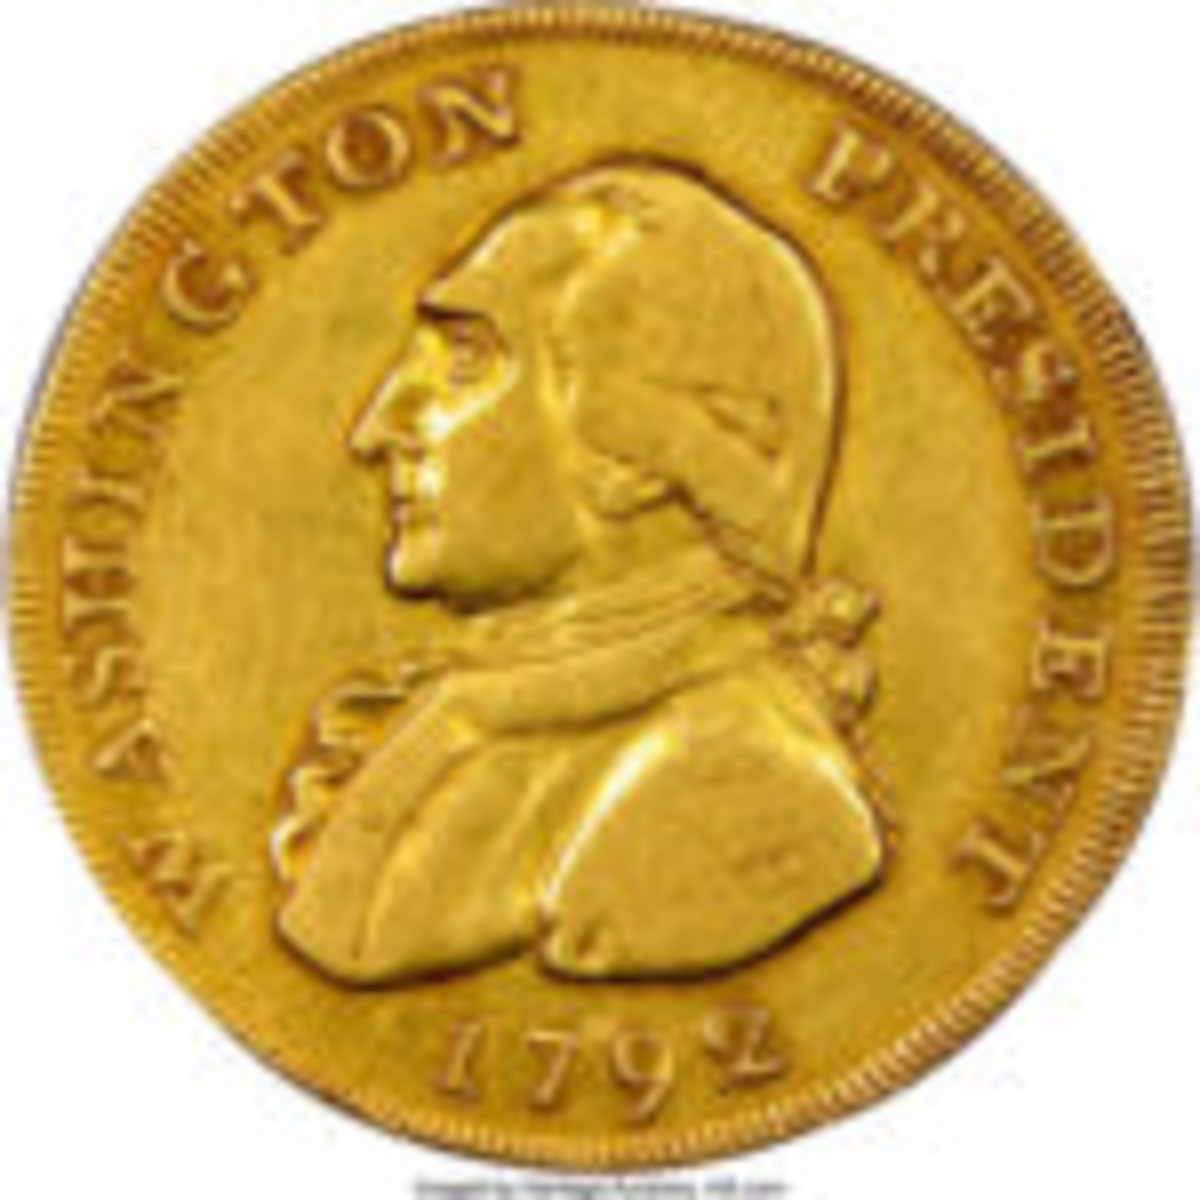 A unique, pattern $10 denomination gold coin depicting George Washington that had been off the market since 1942 sold for $1,740,000 in 2018. (Photo credit: Heritage Auctions www.HA.com.)